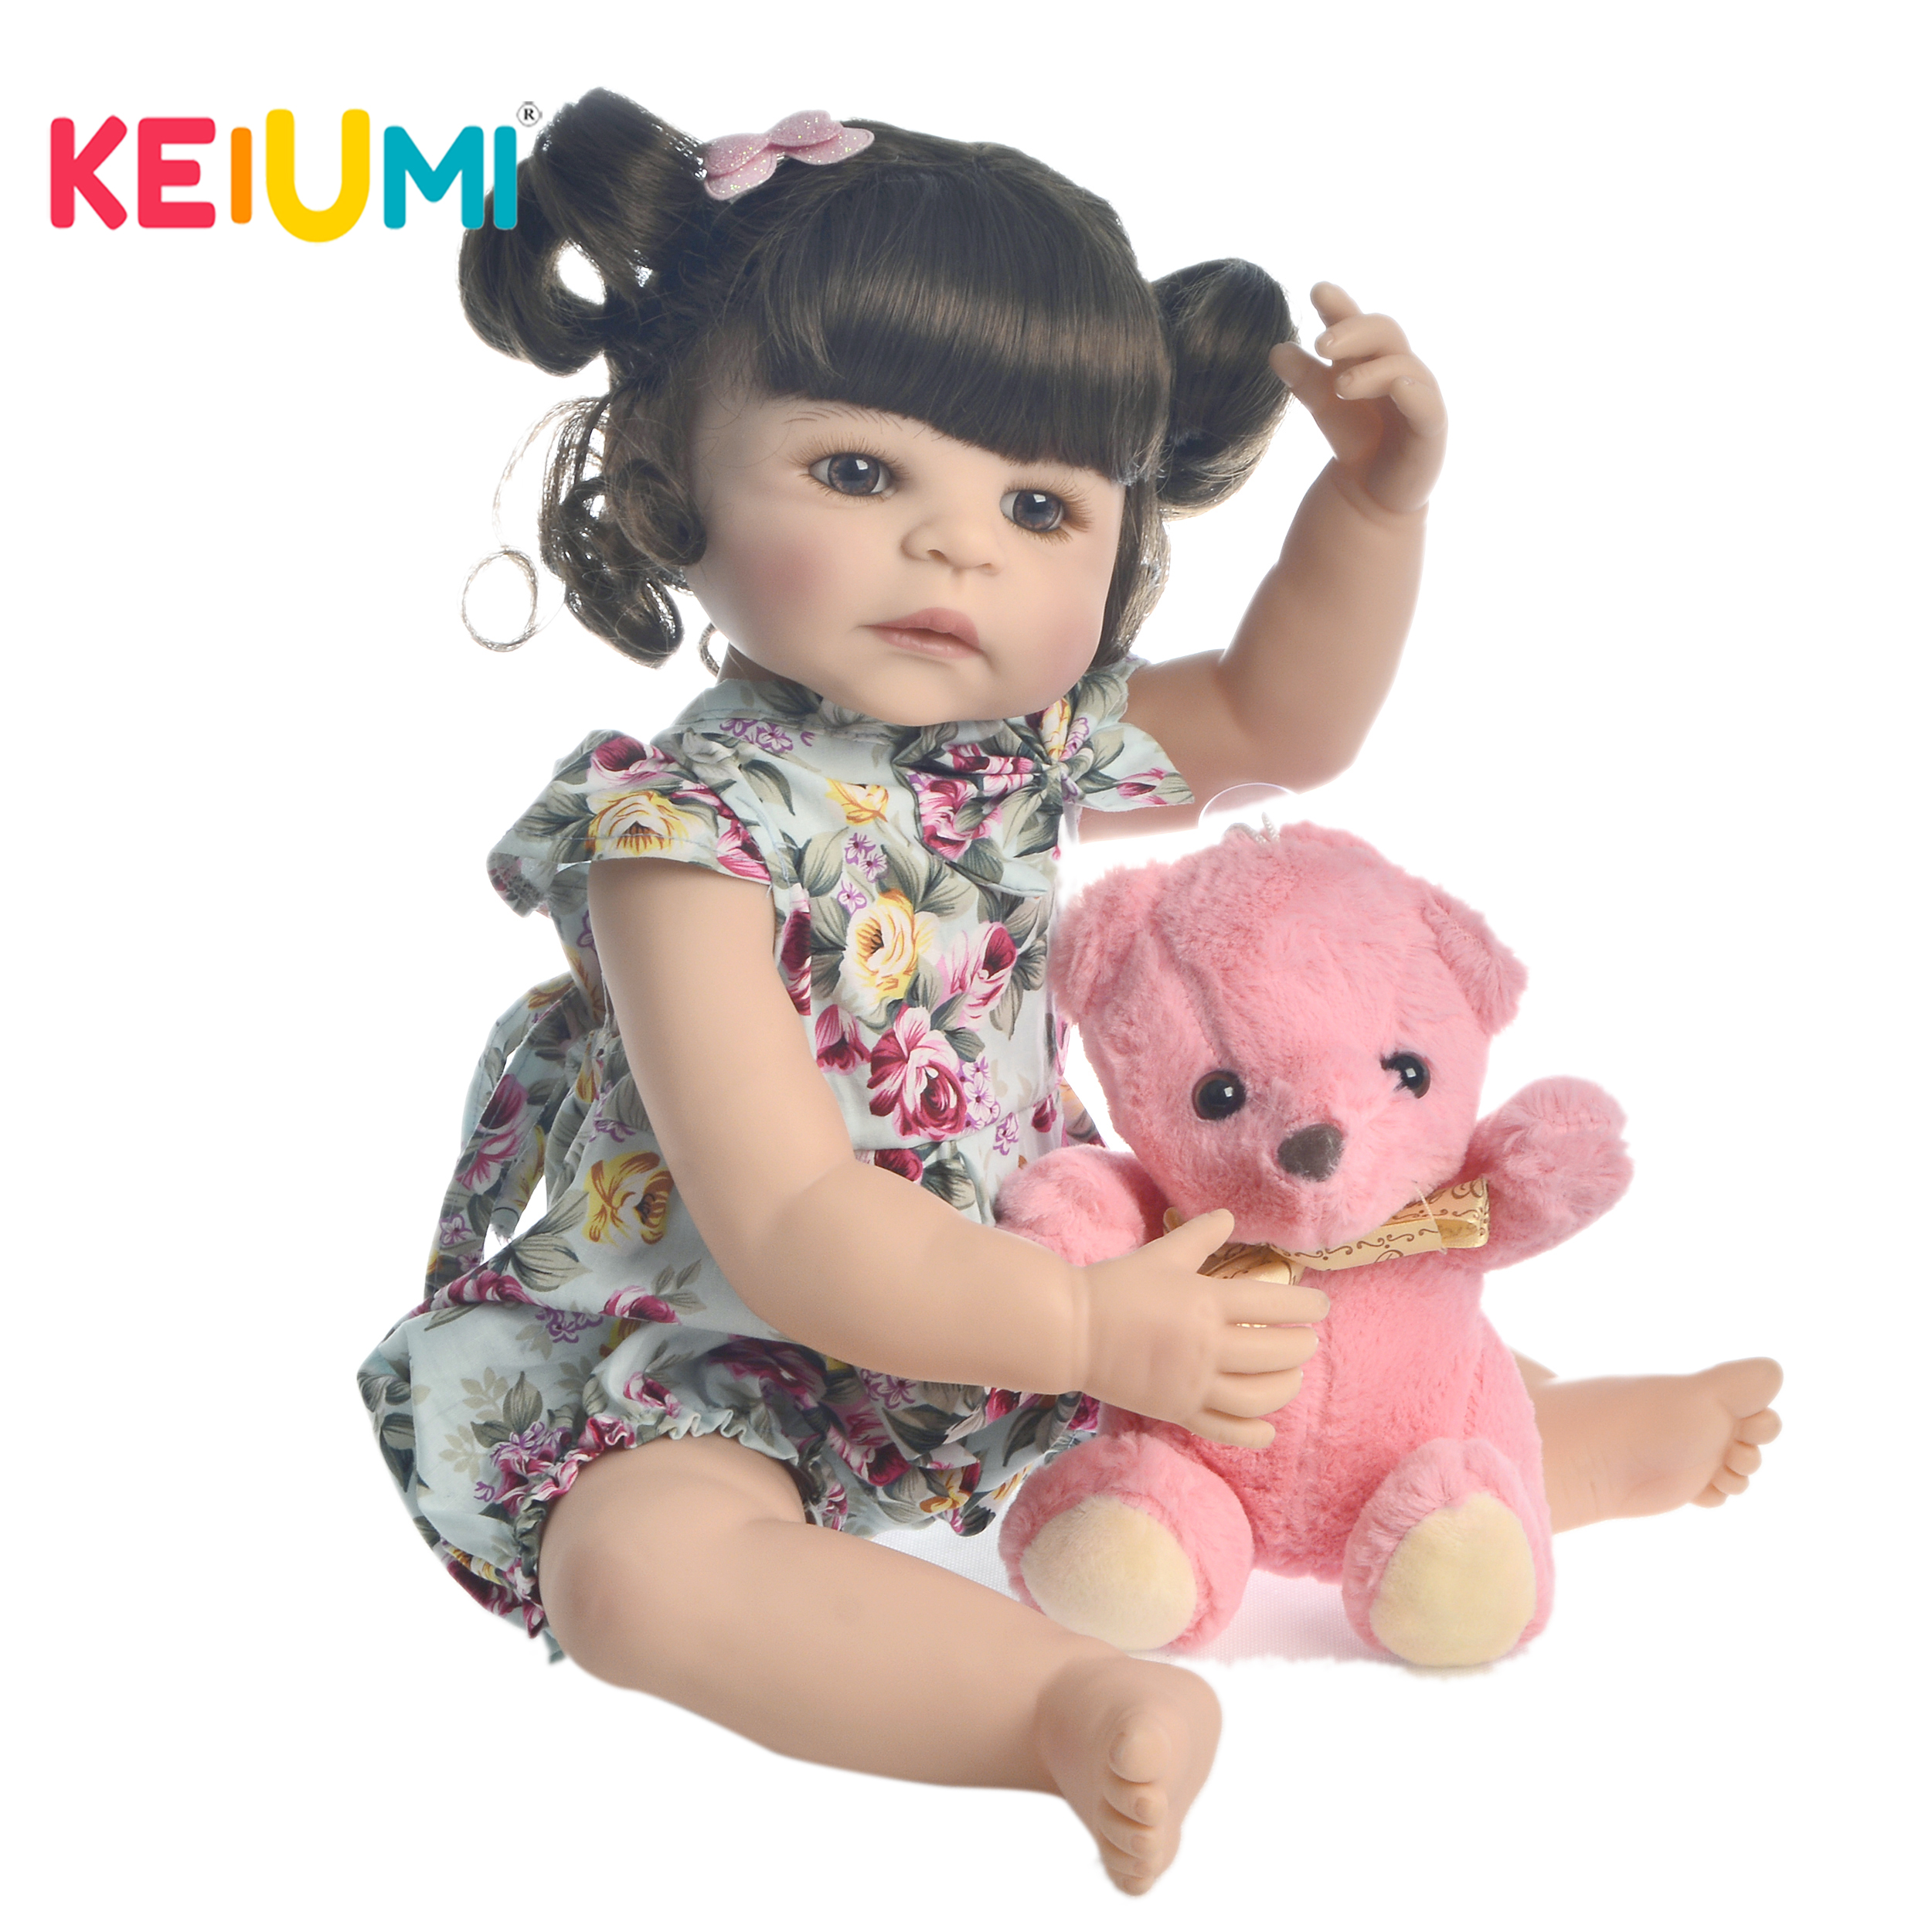 Toys & Hobbies Useful 55cm So Truly Real 22 Inch Silicone Baby Dolls Rooted Hair Fashion Menina Bonecas Handmade Play House Toys For Children